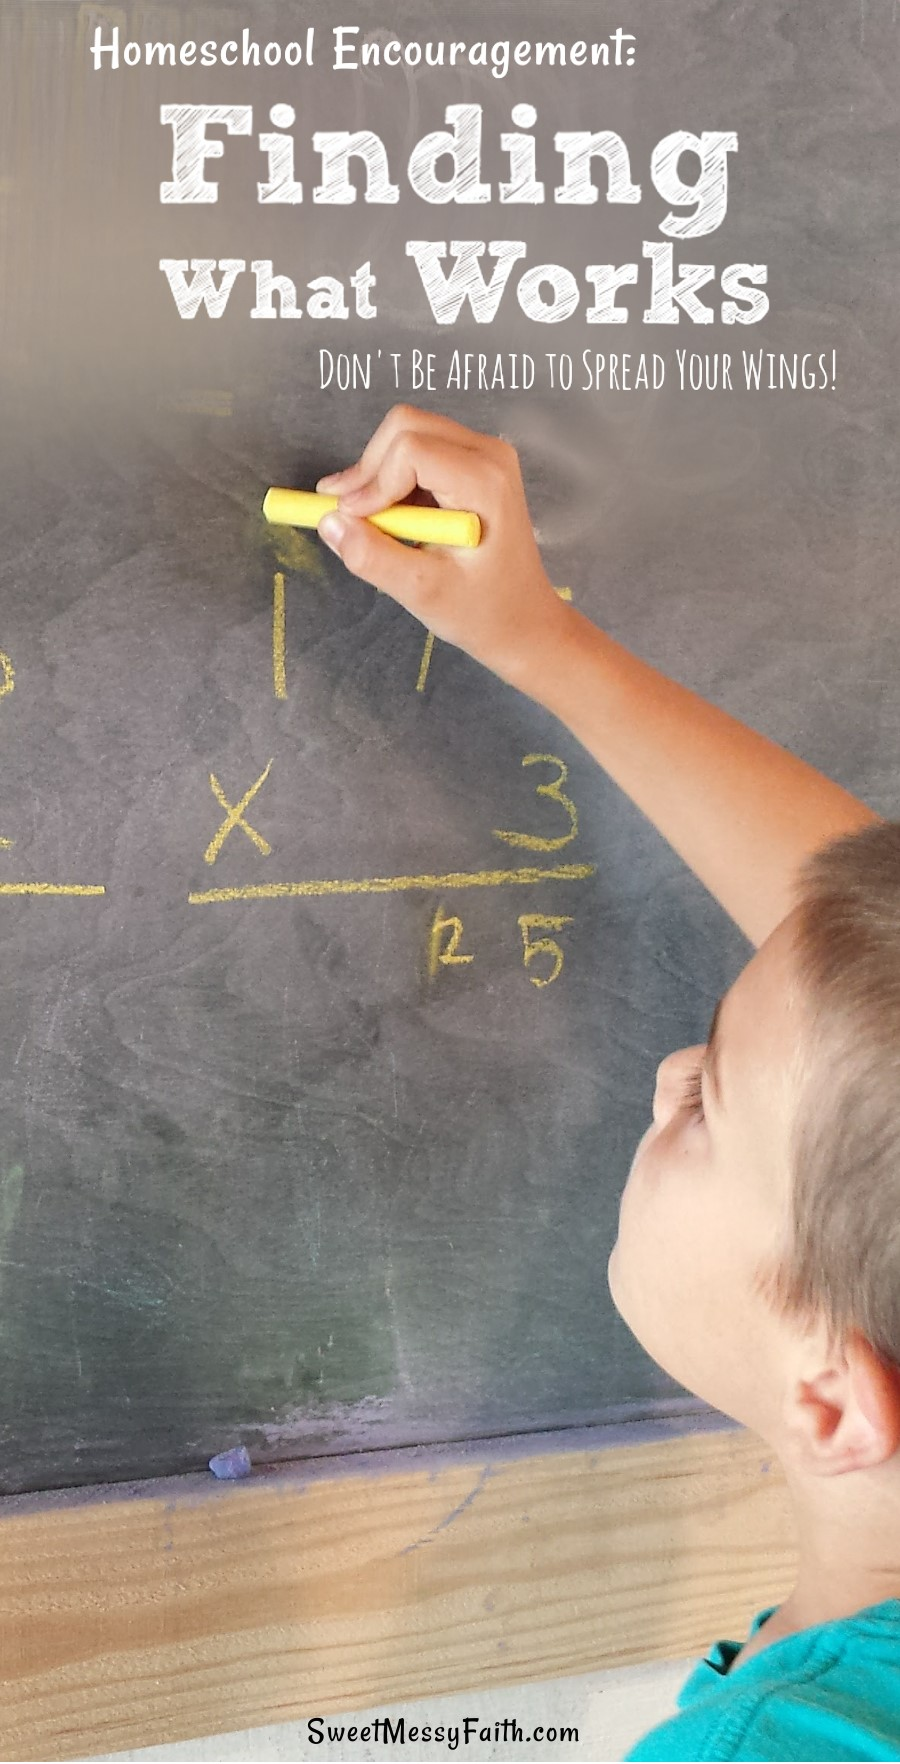 One mama's crazy math approach may raise eyebrows, but it works wonders for her kids! Homeschool Encouragement.